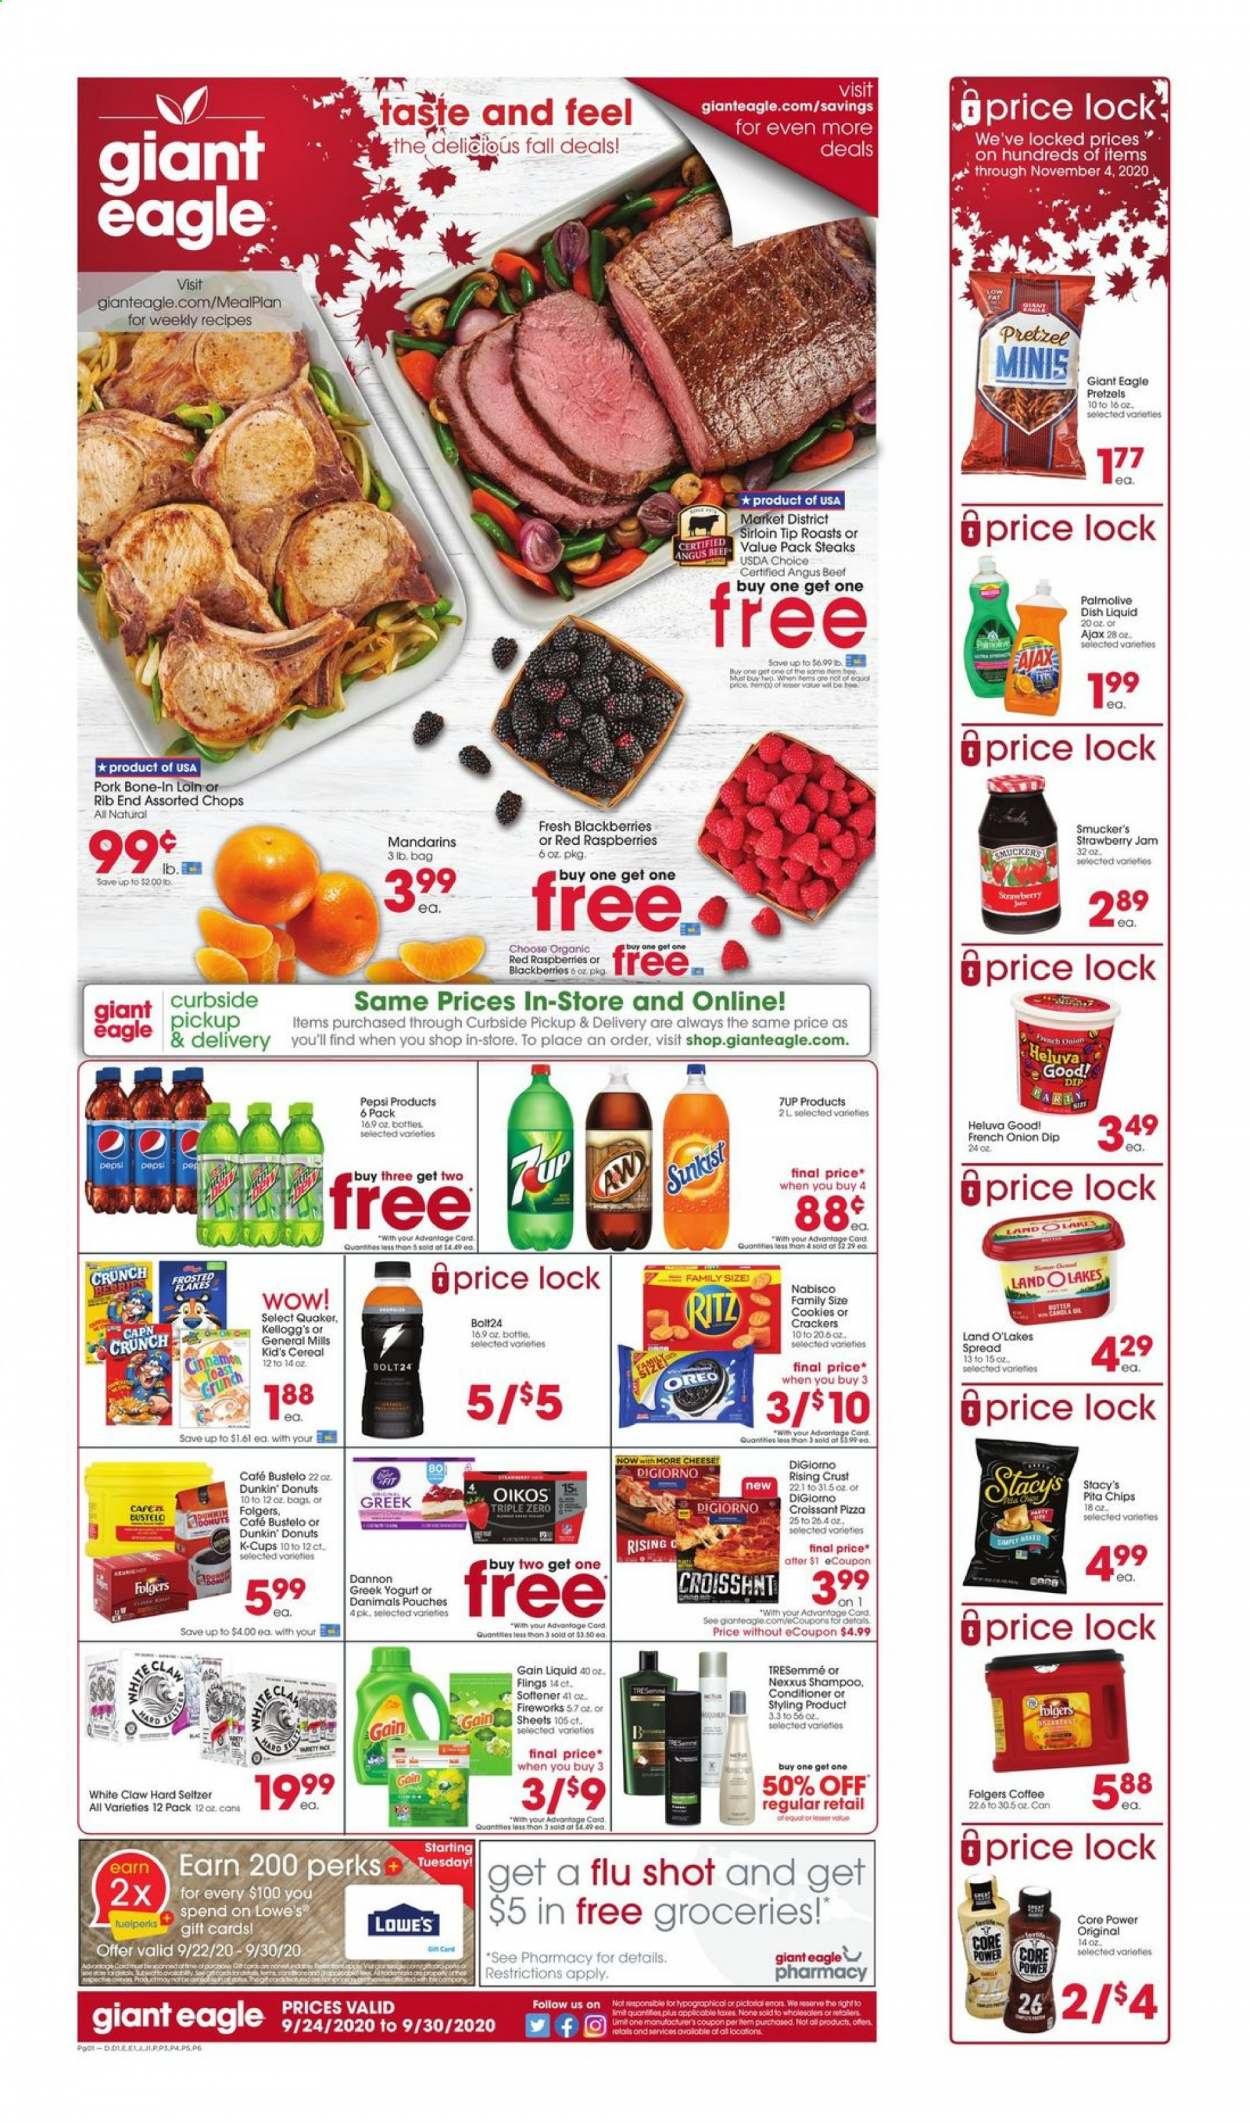 Giant Eagle Flyer - 09.24.2020 - 09.30.2020 - Sales products - beef meat, blackberries, bottle, cap, cereals, coffee, conditioner, cookies, crackers, croissants, gain, greek yogurt, raspberries, seltzer, shampoo, strawberry jam, tresemmé, yogurt, jam, pita, pizza, pork meat, pretzels, pepsi, onion, oreo, organic, chips, cheese, donuts, softener, cereal, ritz, nexxus, dishwashing liquid, flakes, strawberry, liquid, dish, oil, folgers, donut. Page 1.